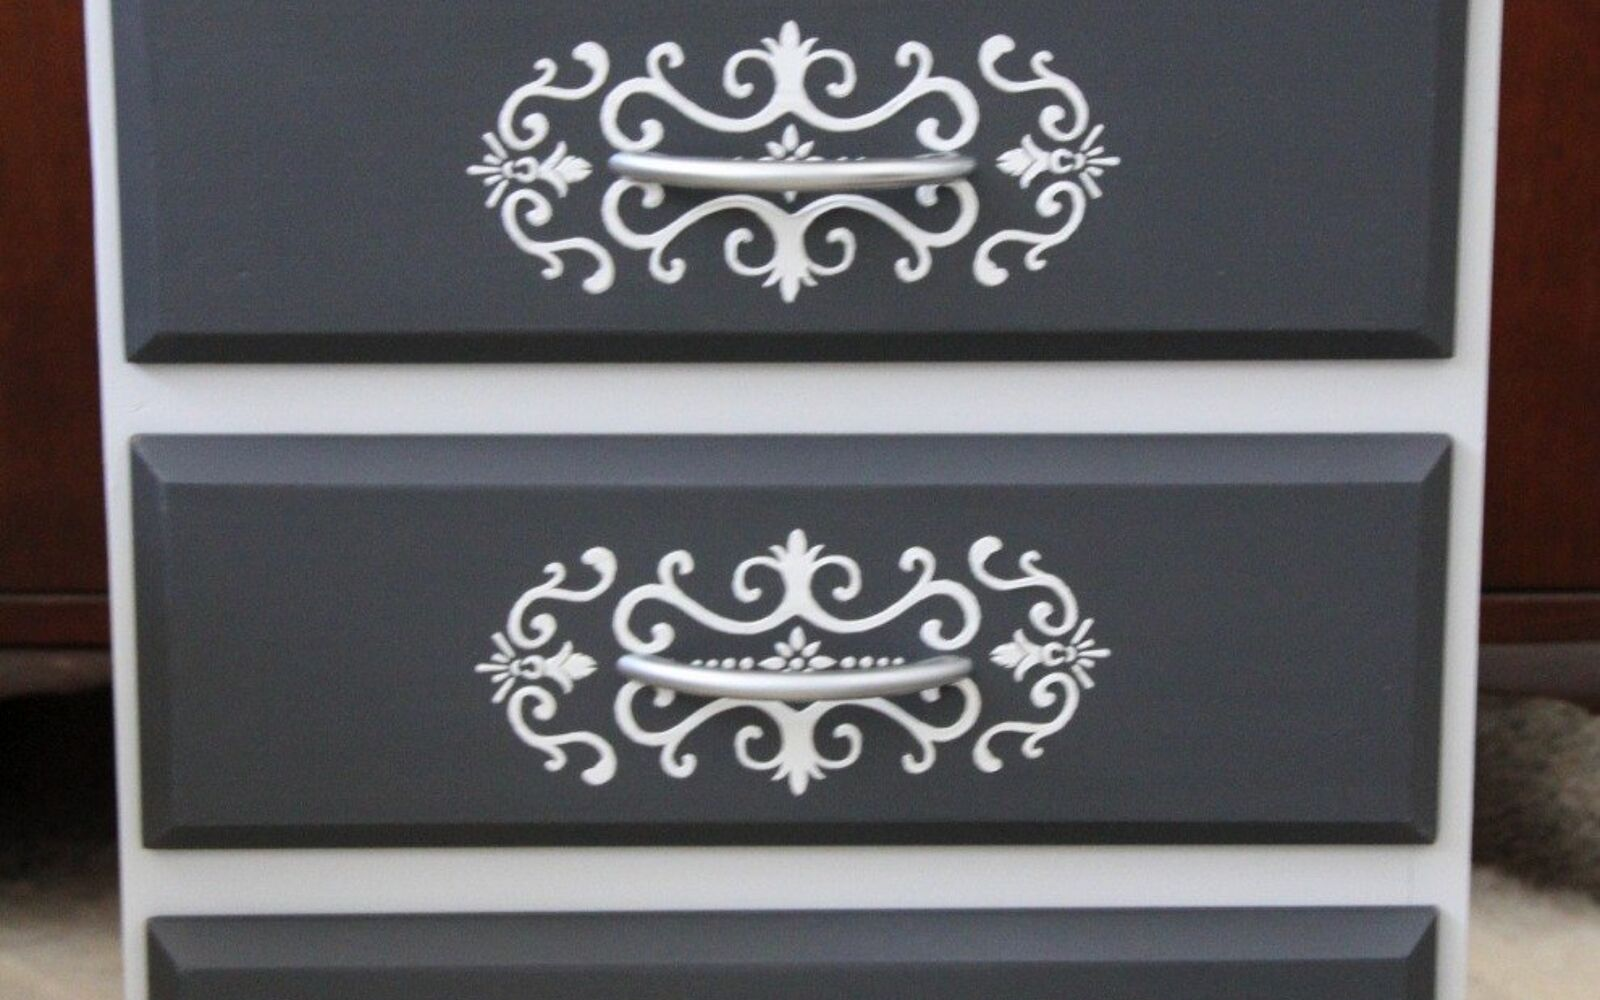 s 14 glamorous ways to upgrade your home using stencils, Using Embossing Paste to Enhance Your Stencil